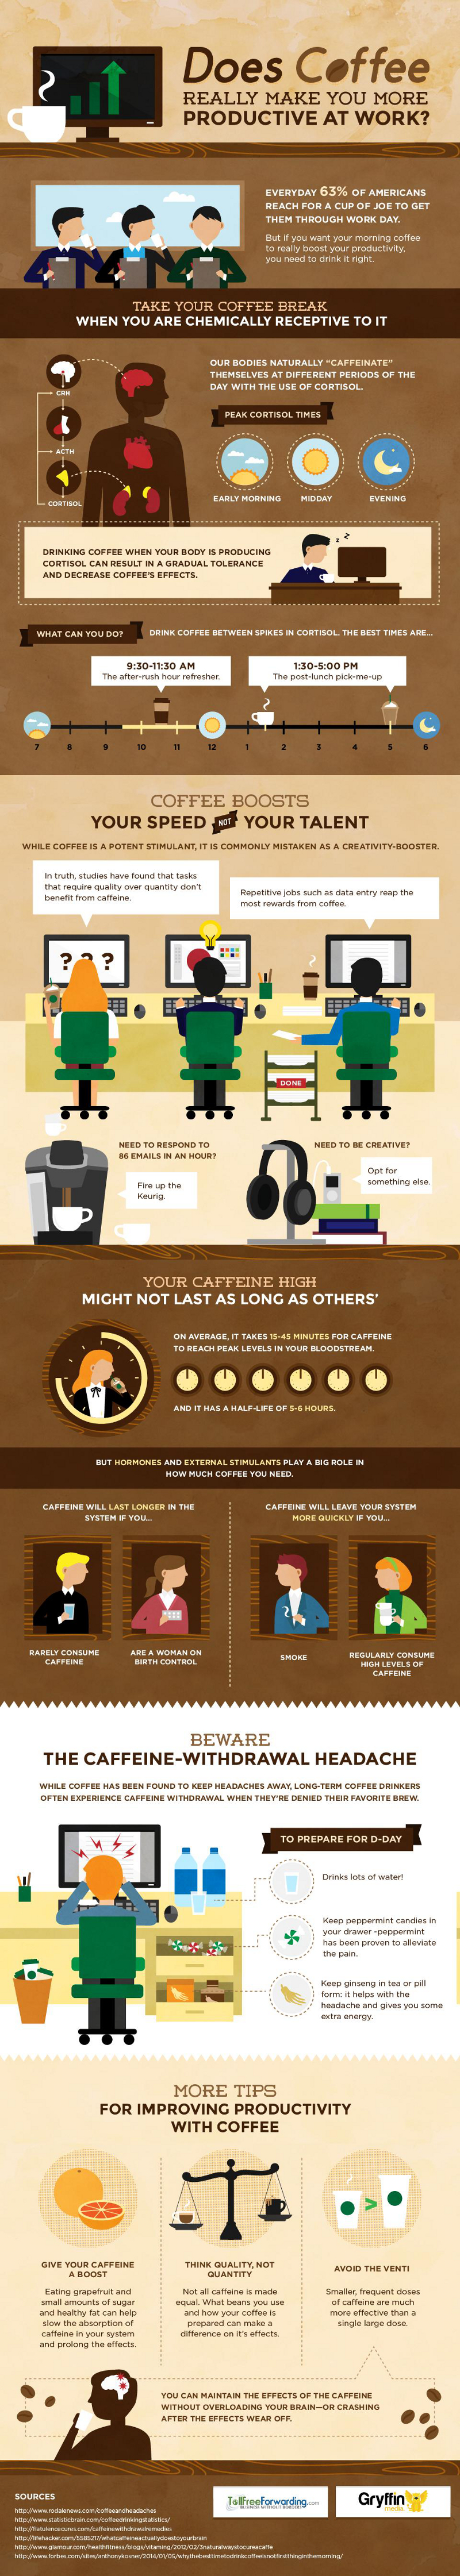 Benefits-of-Coffee